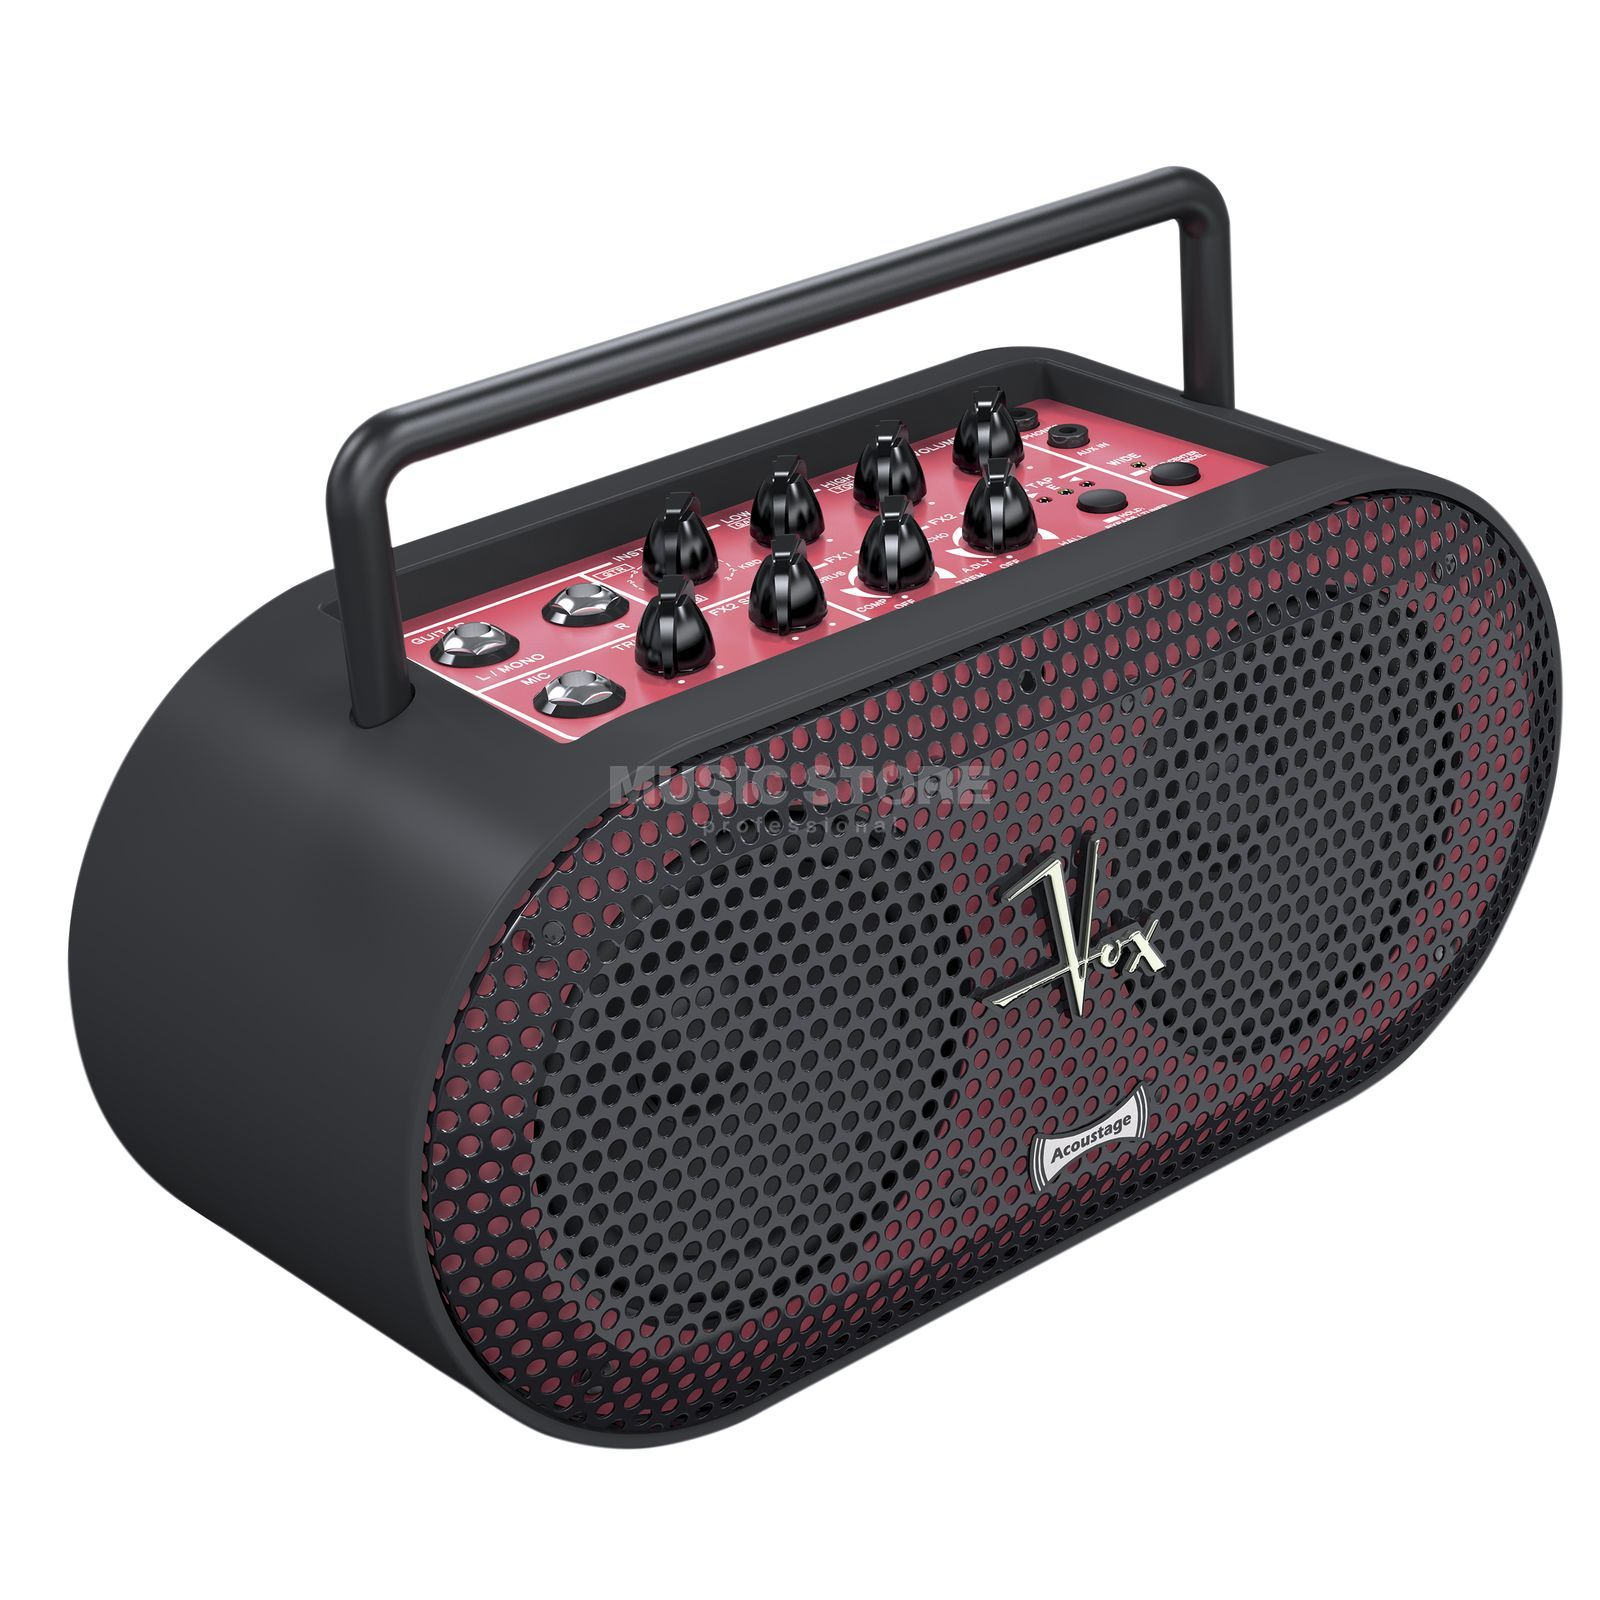 VOX Soundbox Mini BK Black Produktbillede